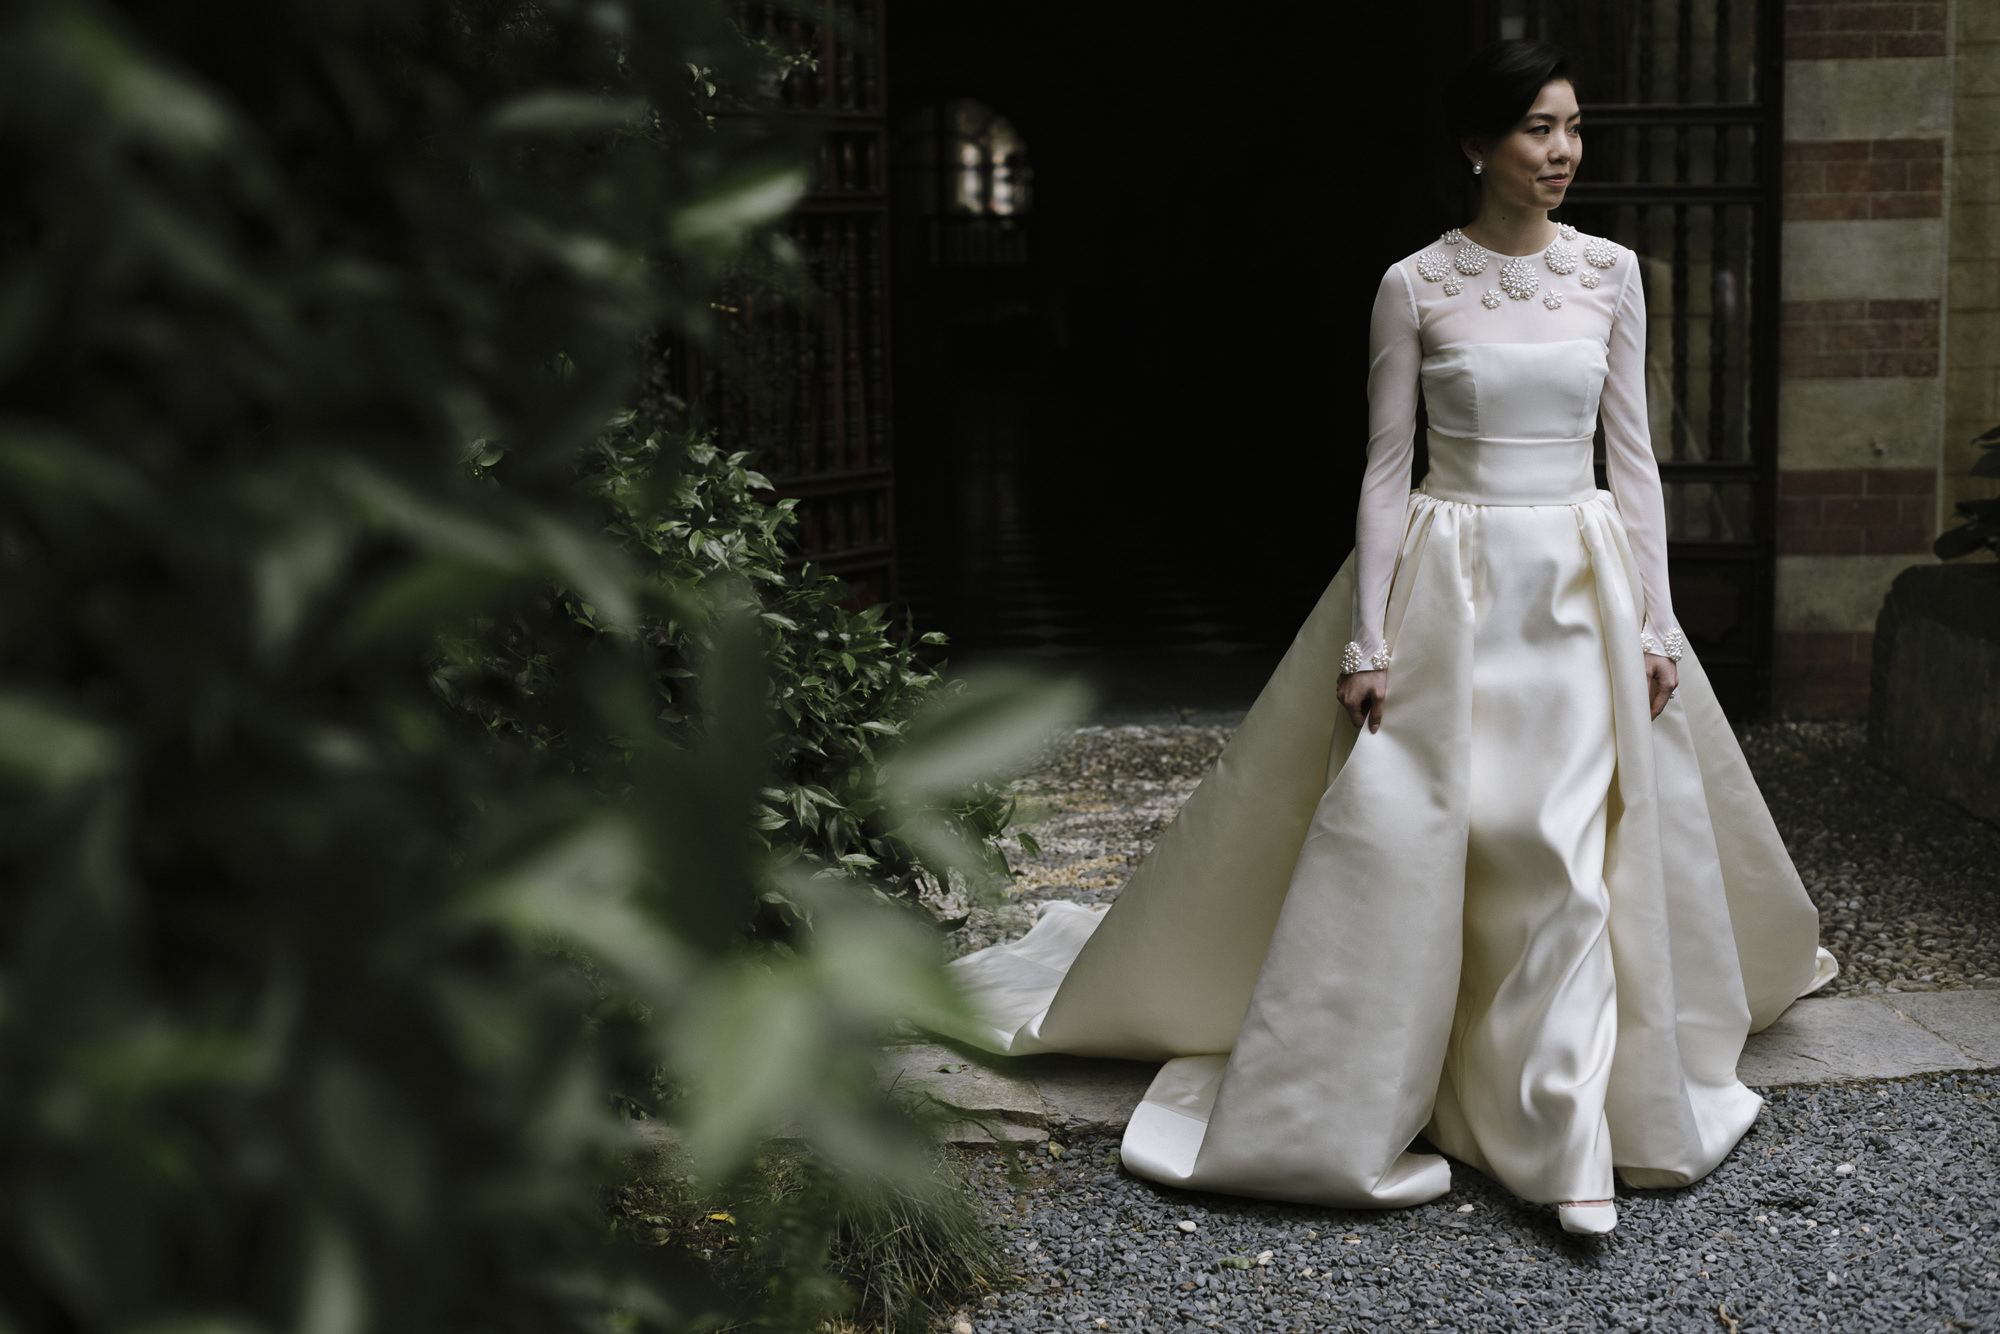 Asian bride in elegant long-sleeved wedding gown, by Thierry Joubert